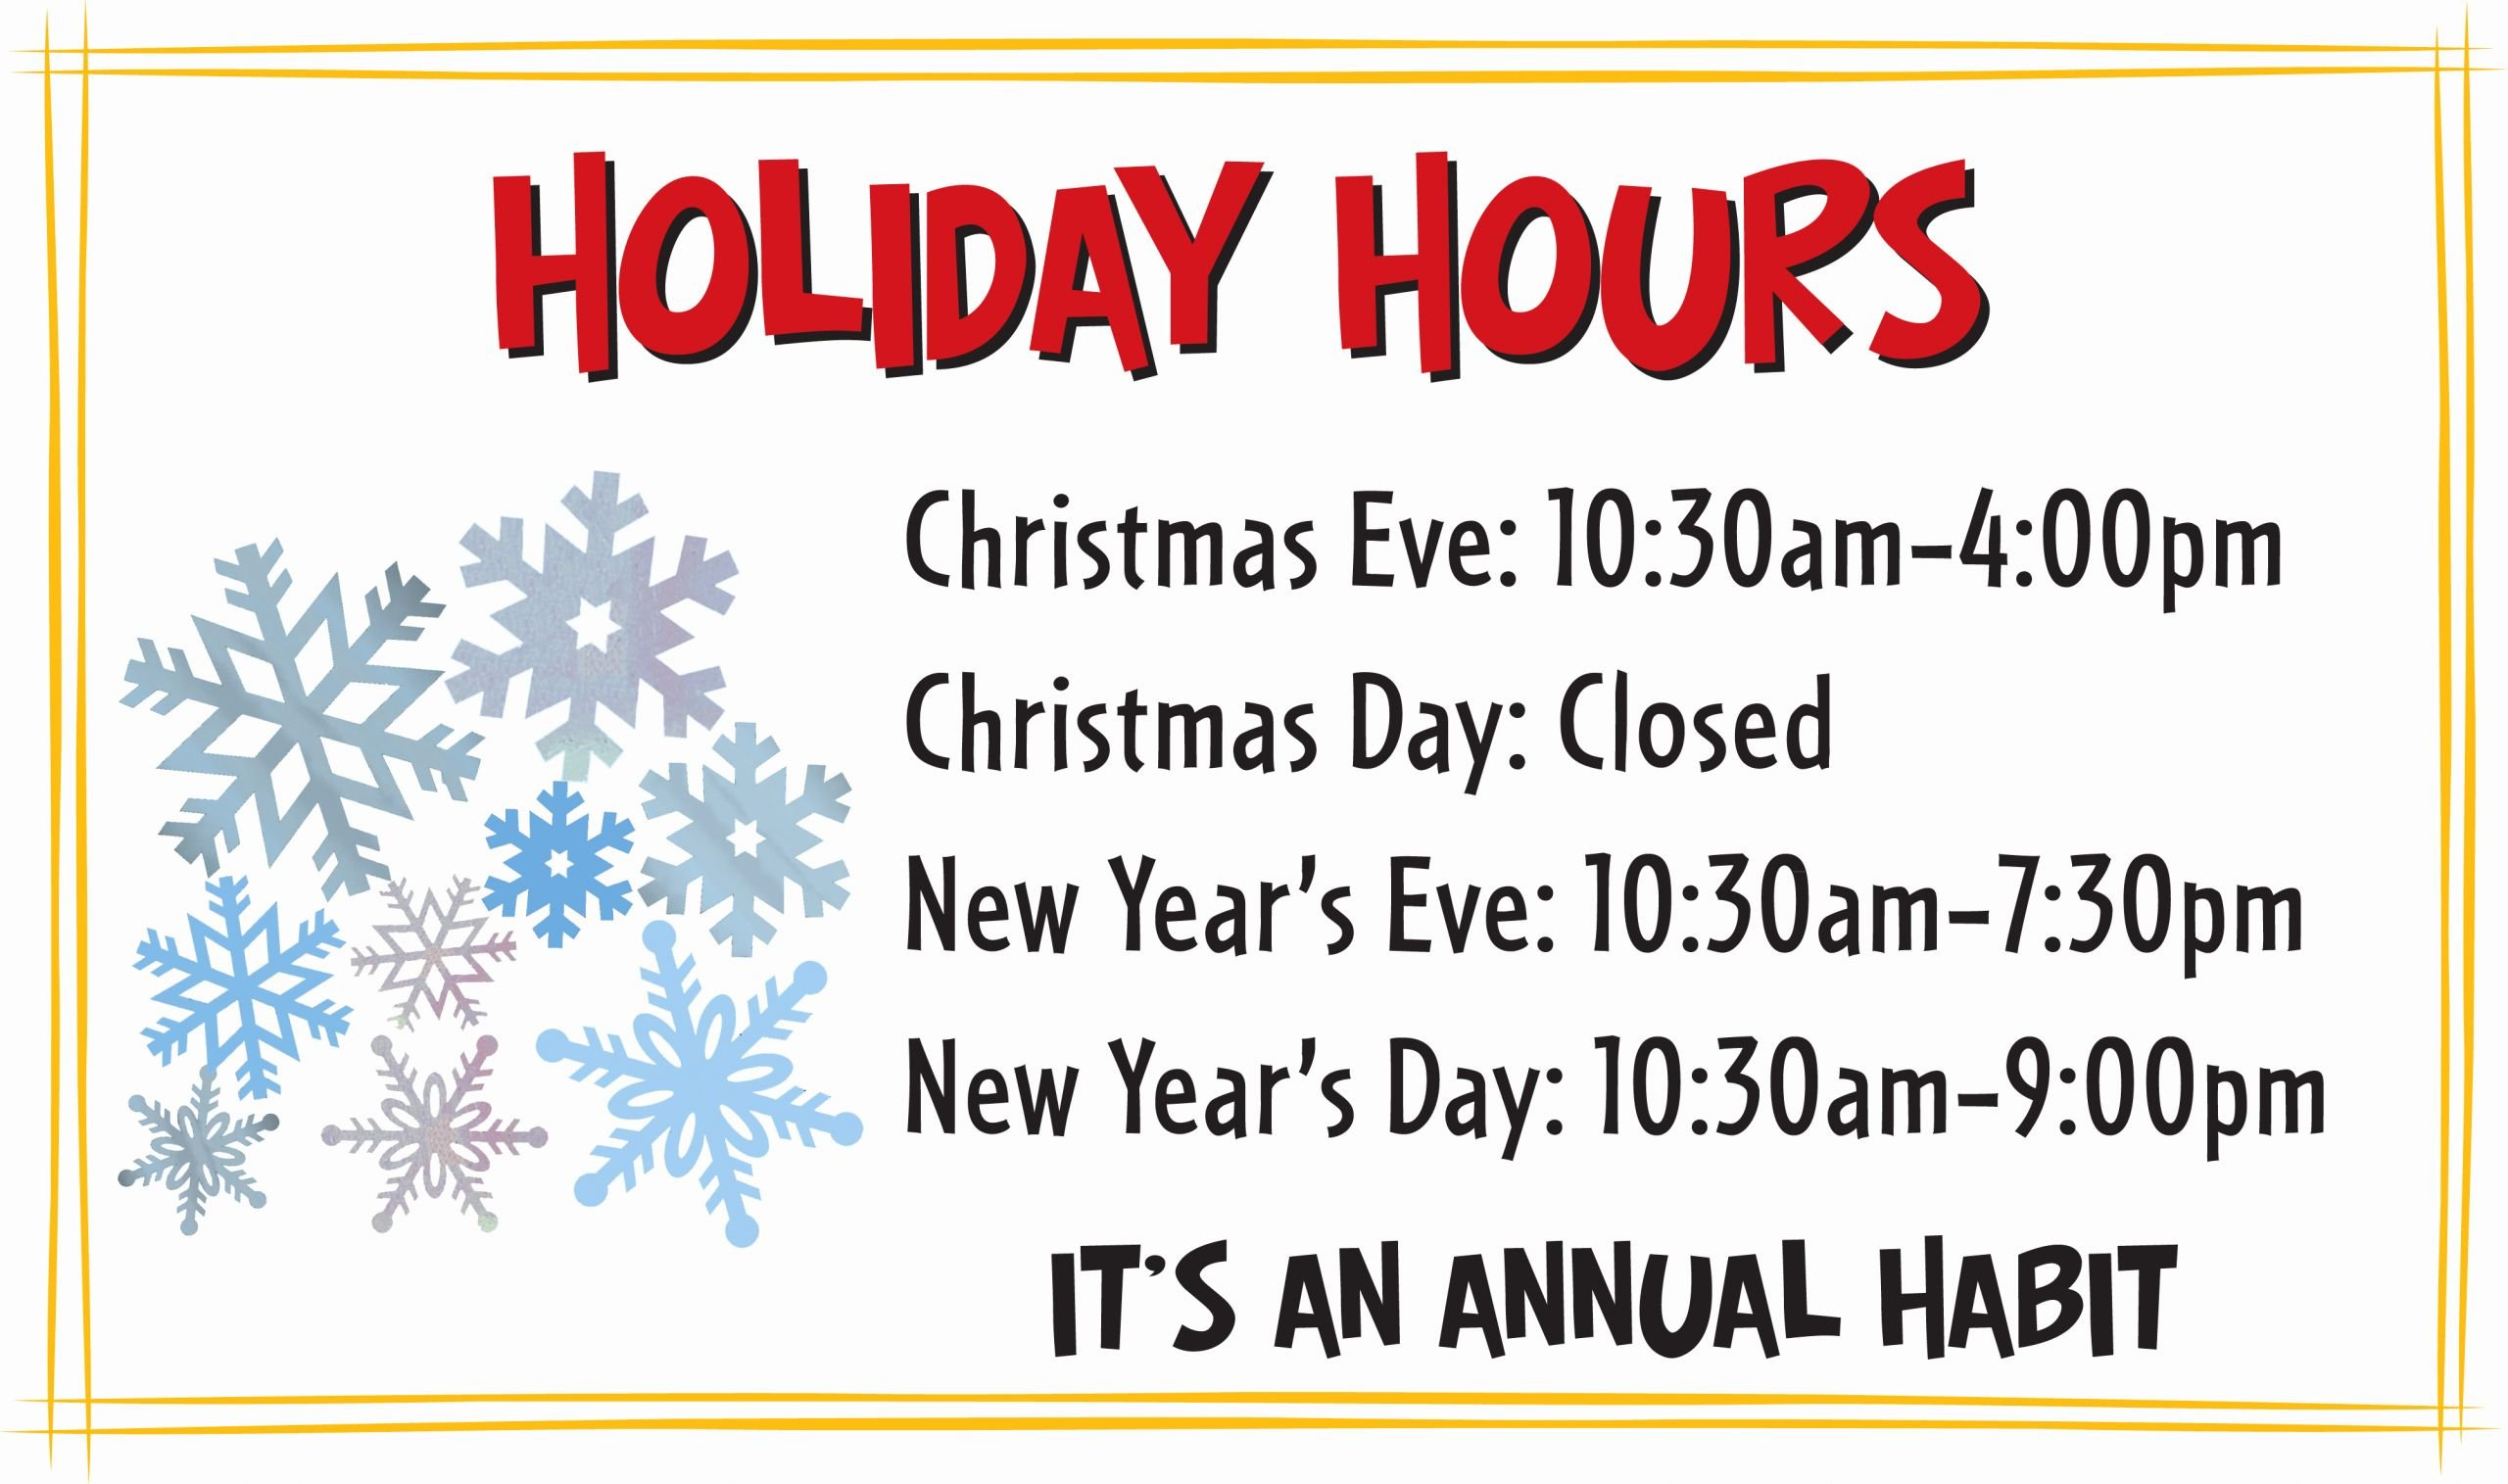 Holiday Hours Template Word Luxury Habit Holiday Hours